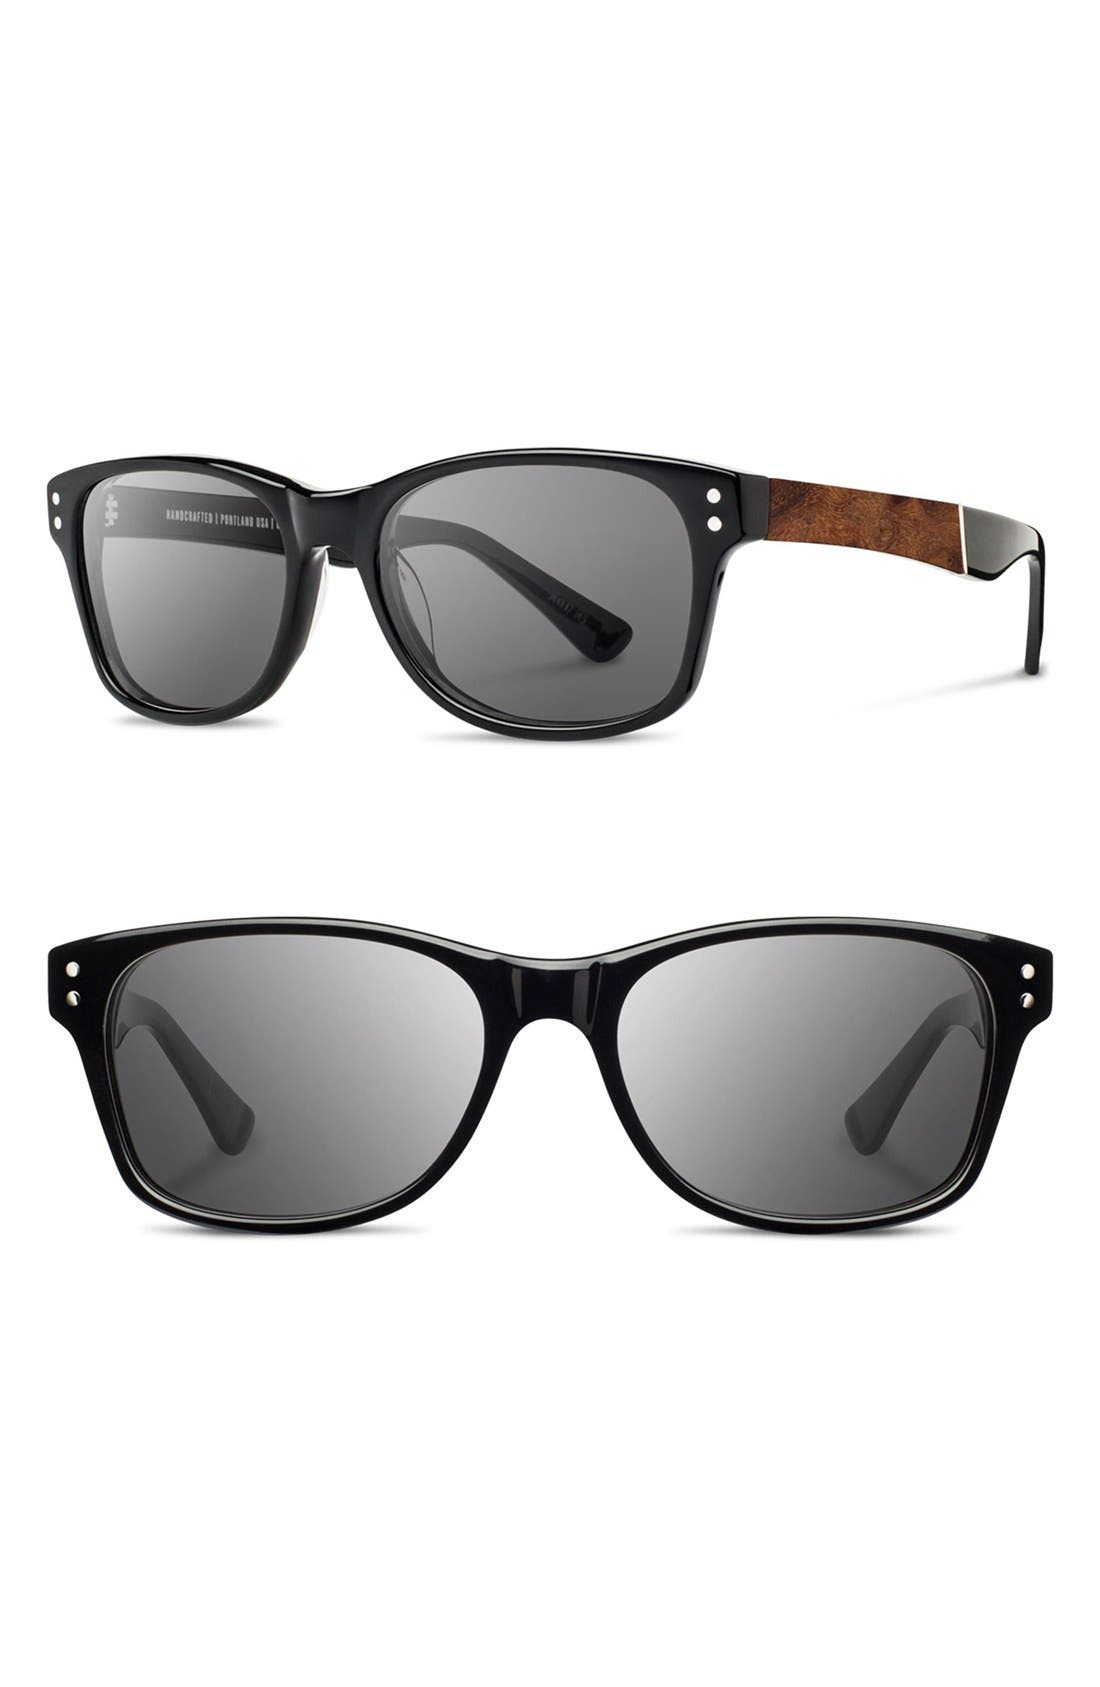 Main Image - Shwood 'Cannon' 54mm Polarized Acetate & Wood Sunglasses